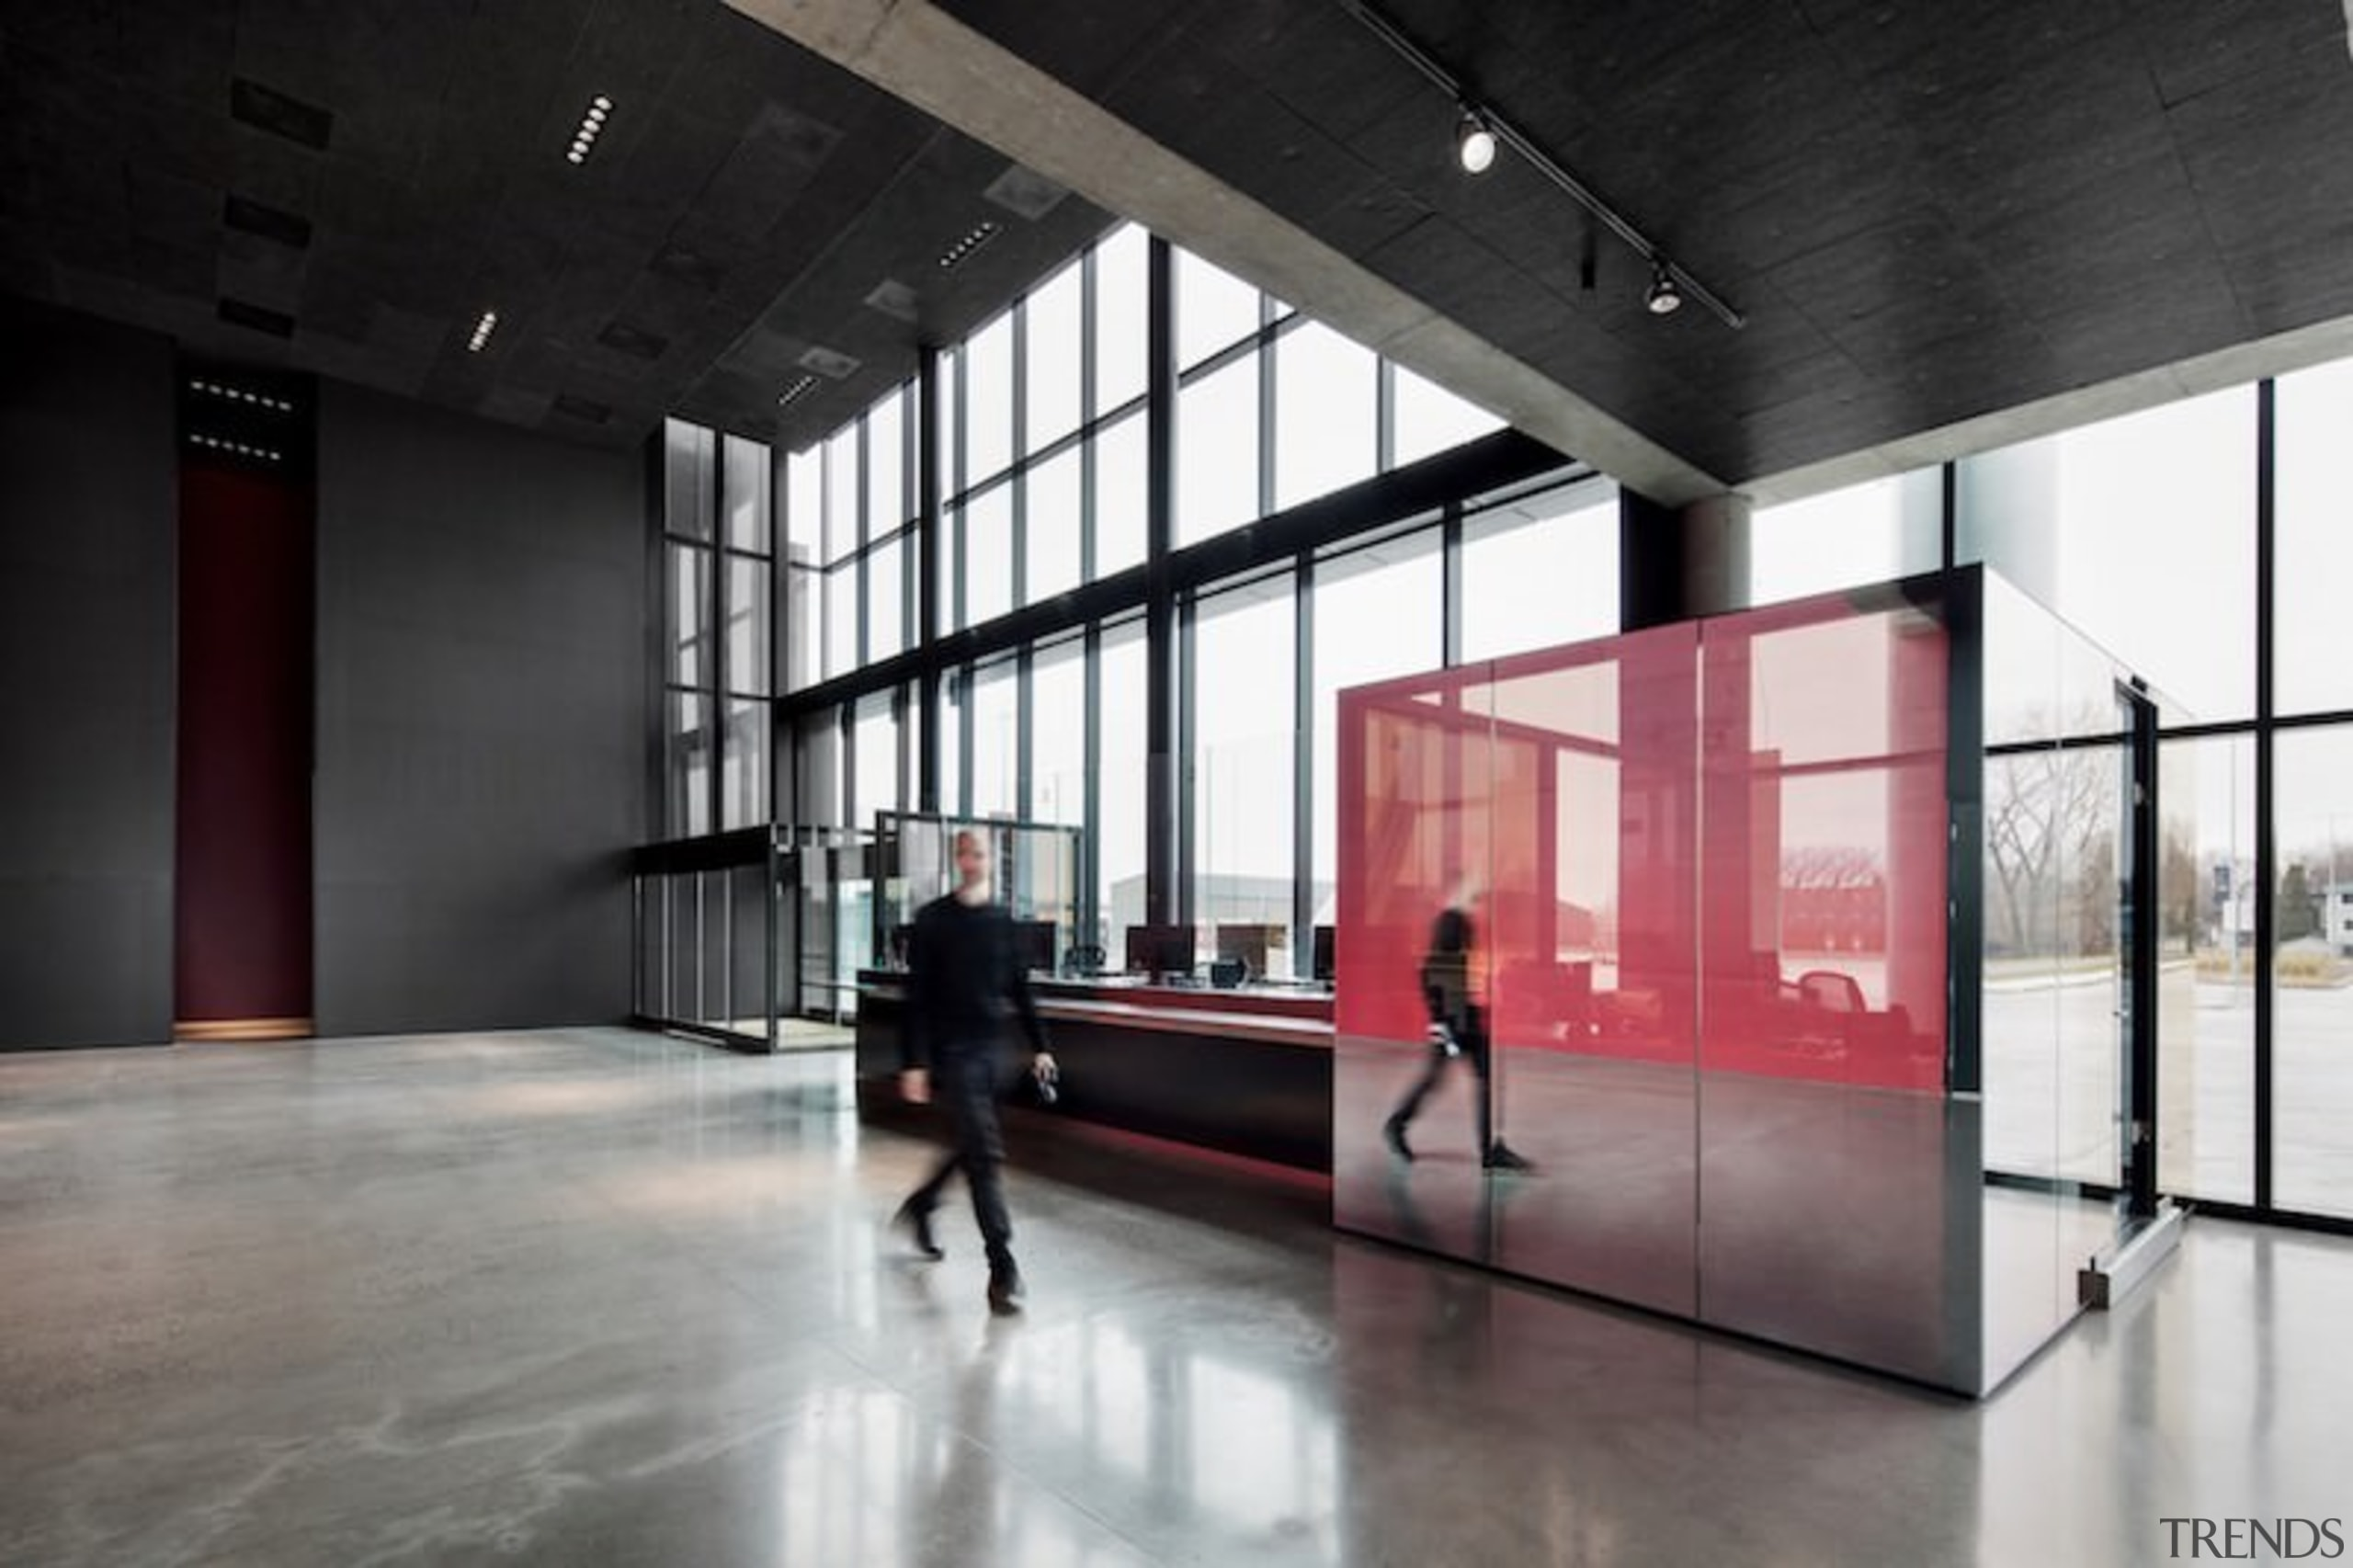 Large windows flood the foyer with light - architecture, floor, interior design, lobby, tourist attraction, black, gray